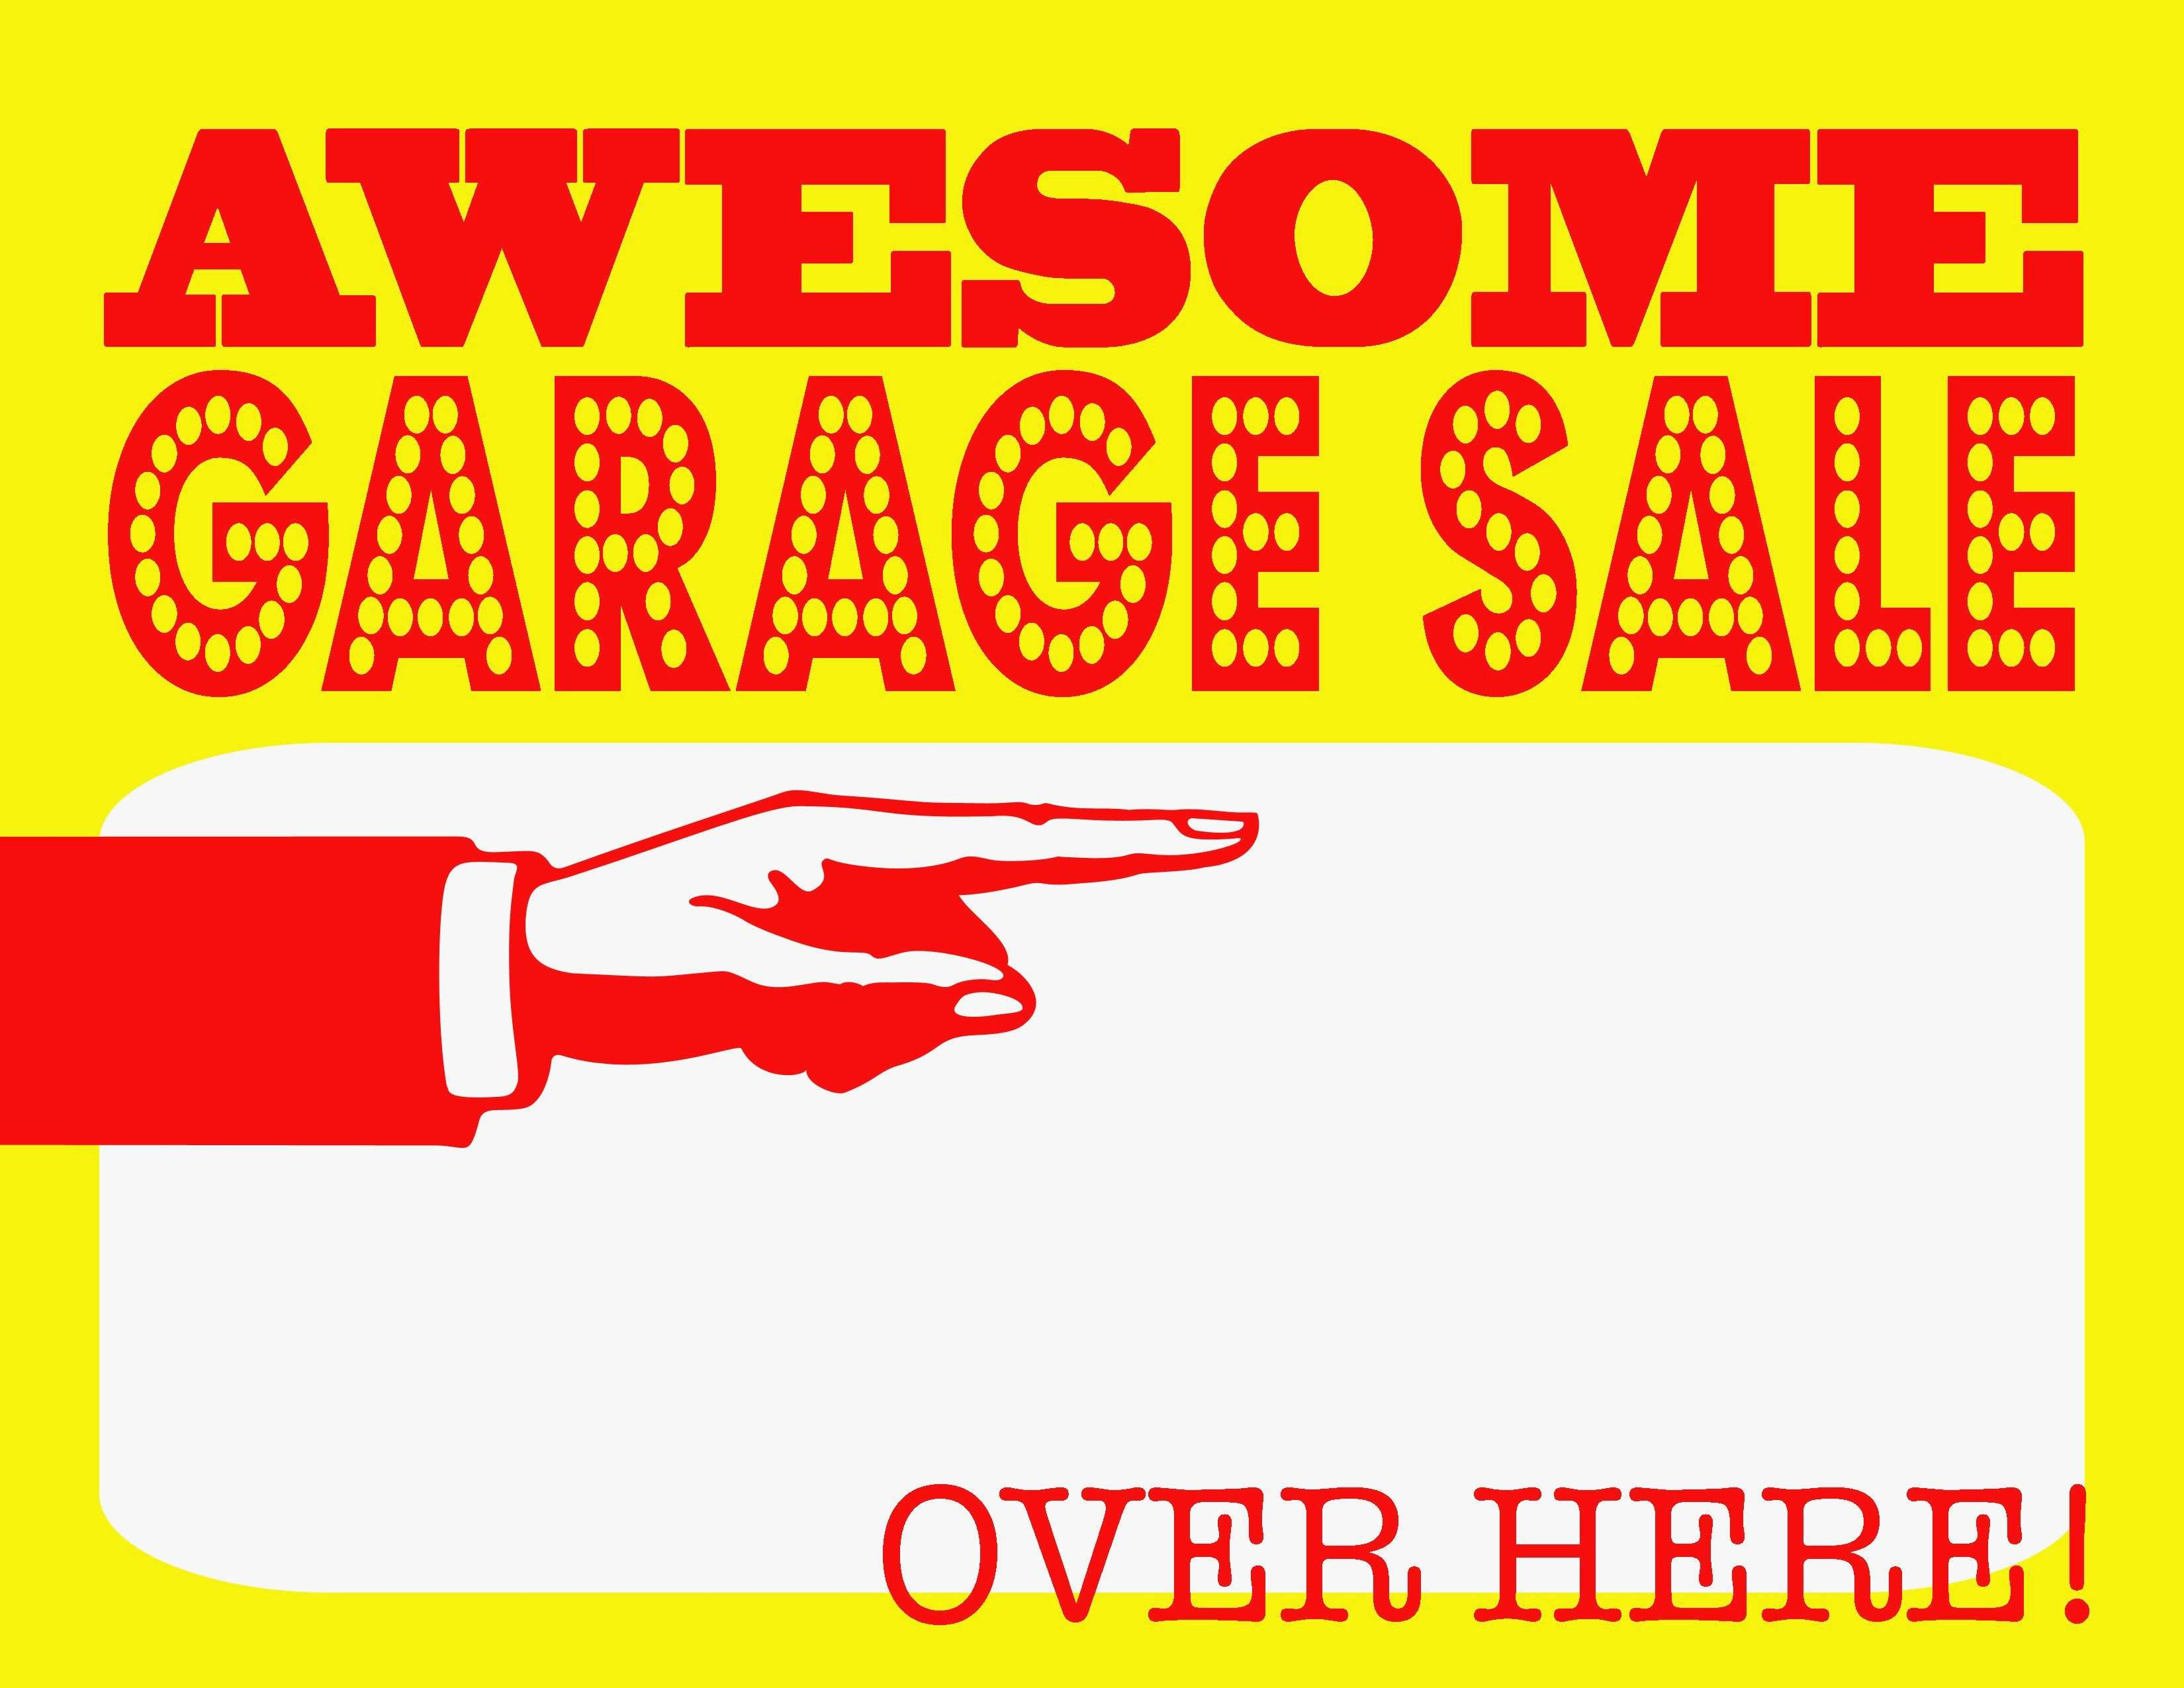 005 Yard Sale Signs Templates Inspirational Free Printable Kinoweb - Free Printable Yard Sale Signs